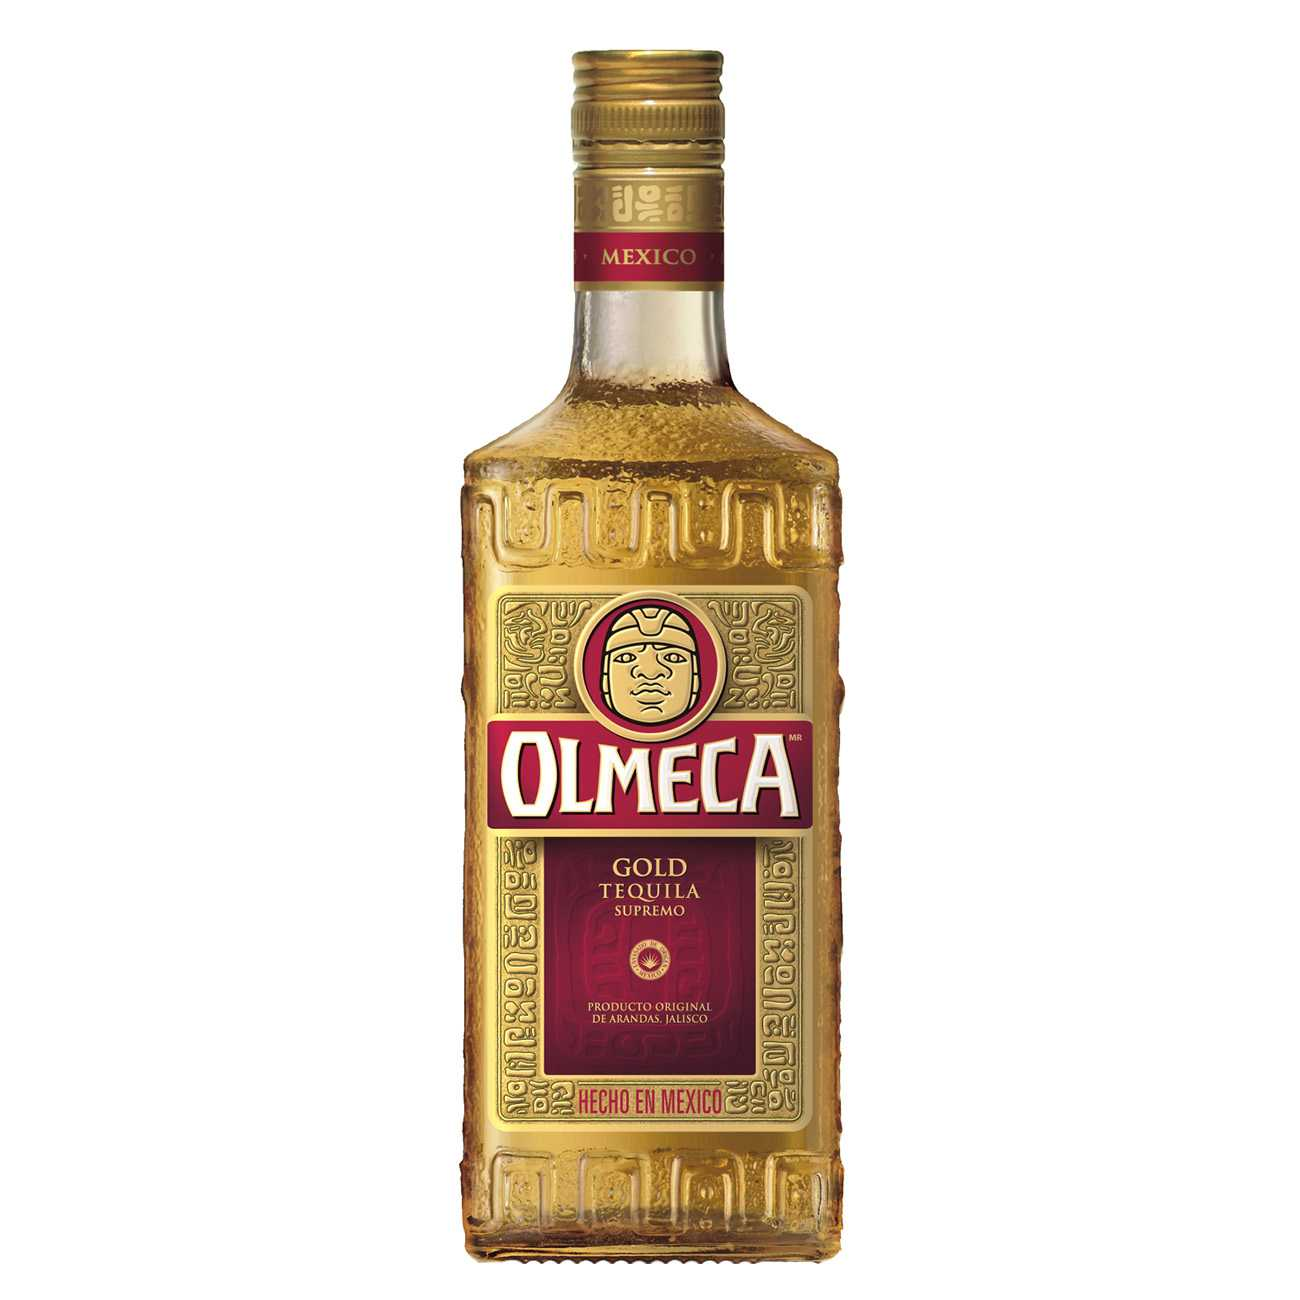 Tequila, GOLD 1000 ML, Olmeca